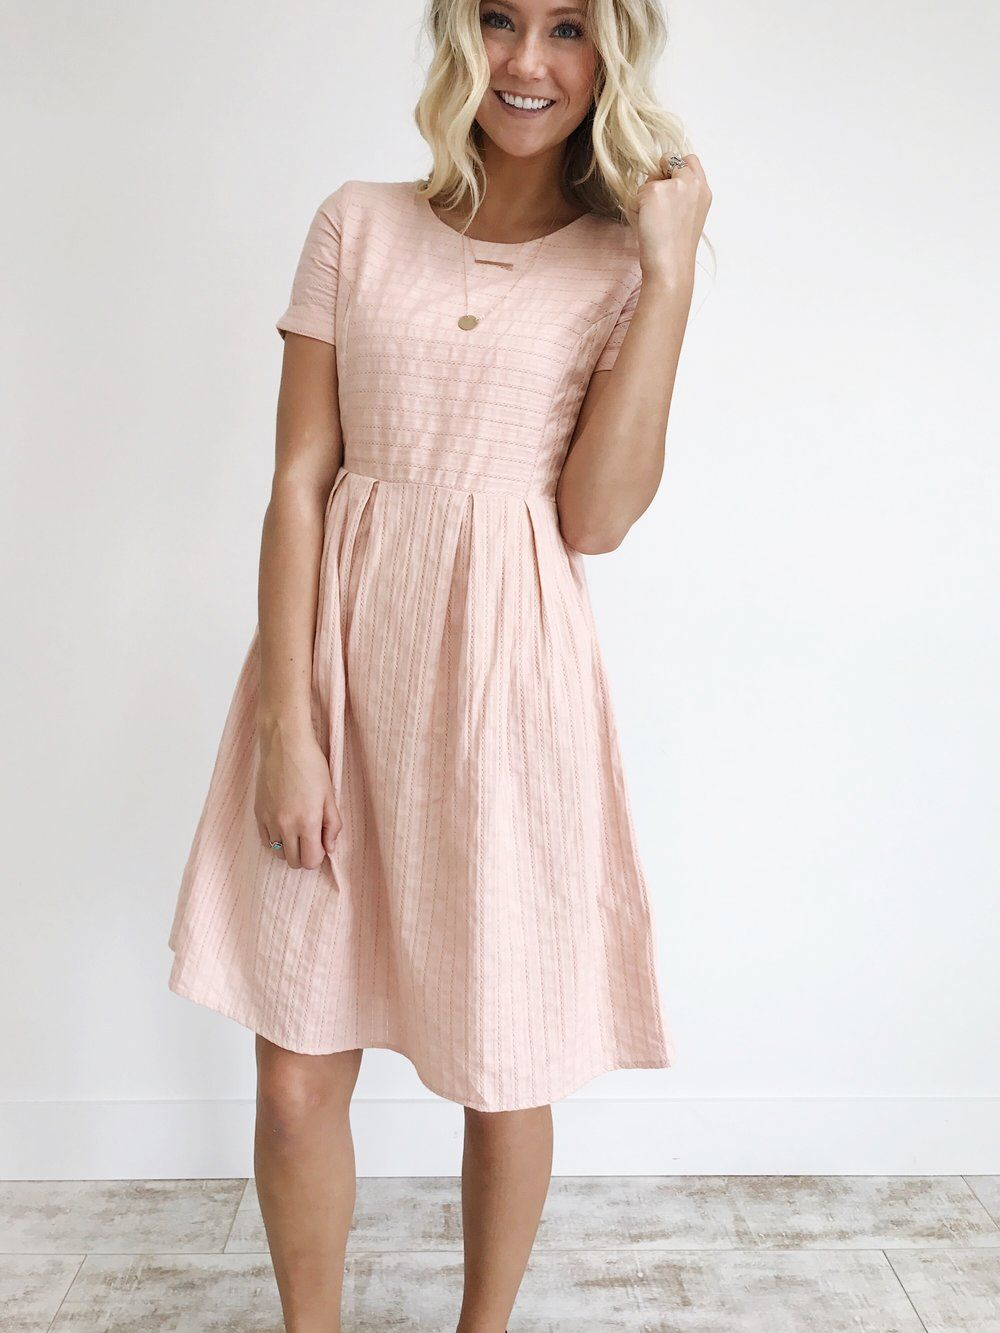 Navy blue dress for spring wedding  Sammi Dress in Blush  ROOLEE  dresses  Pinterest  Clothes